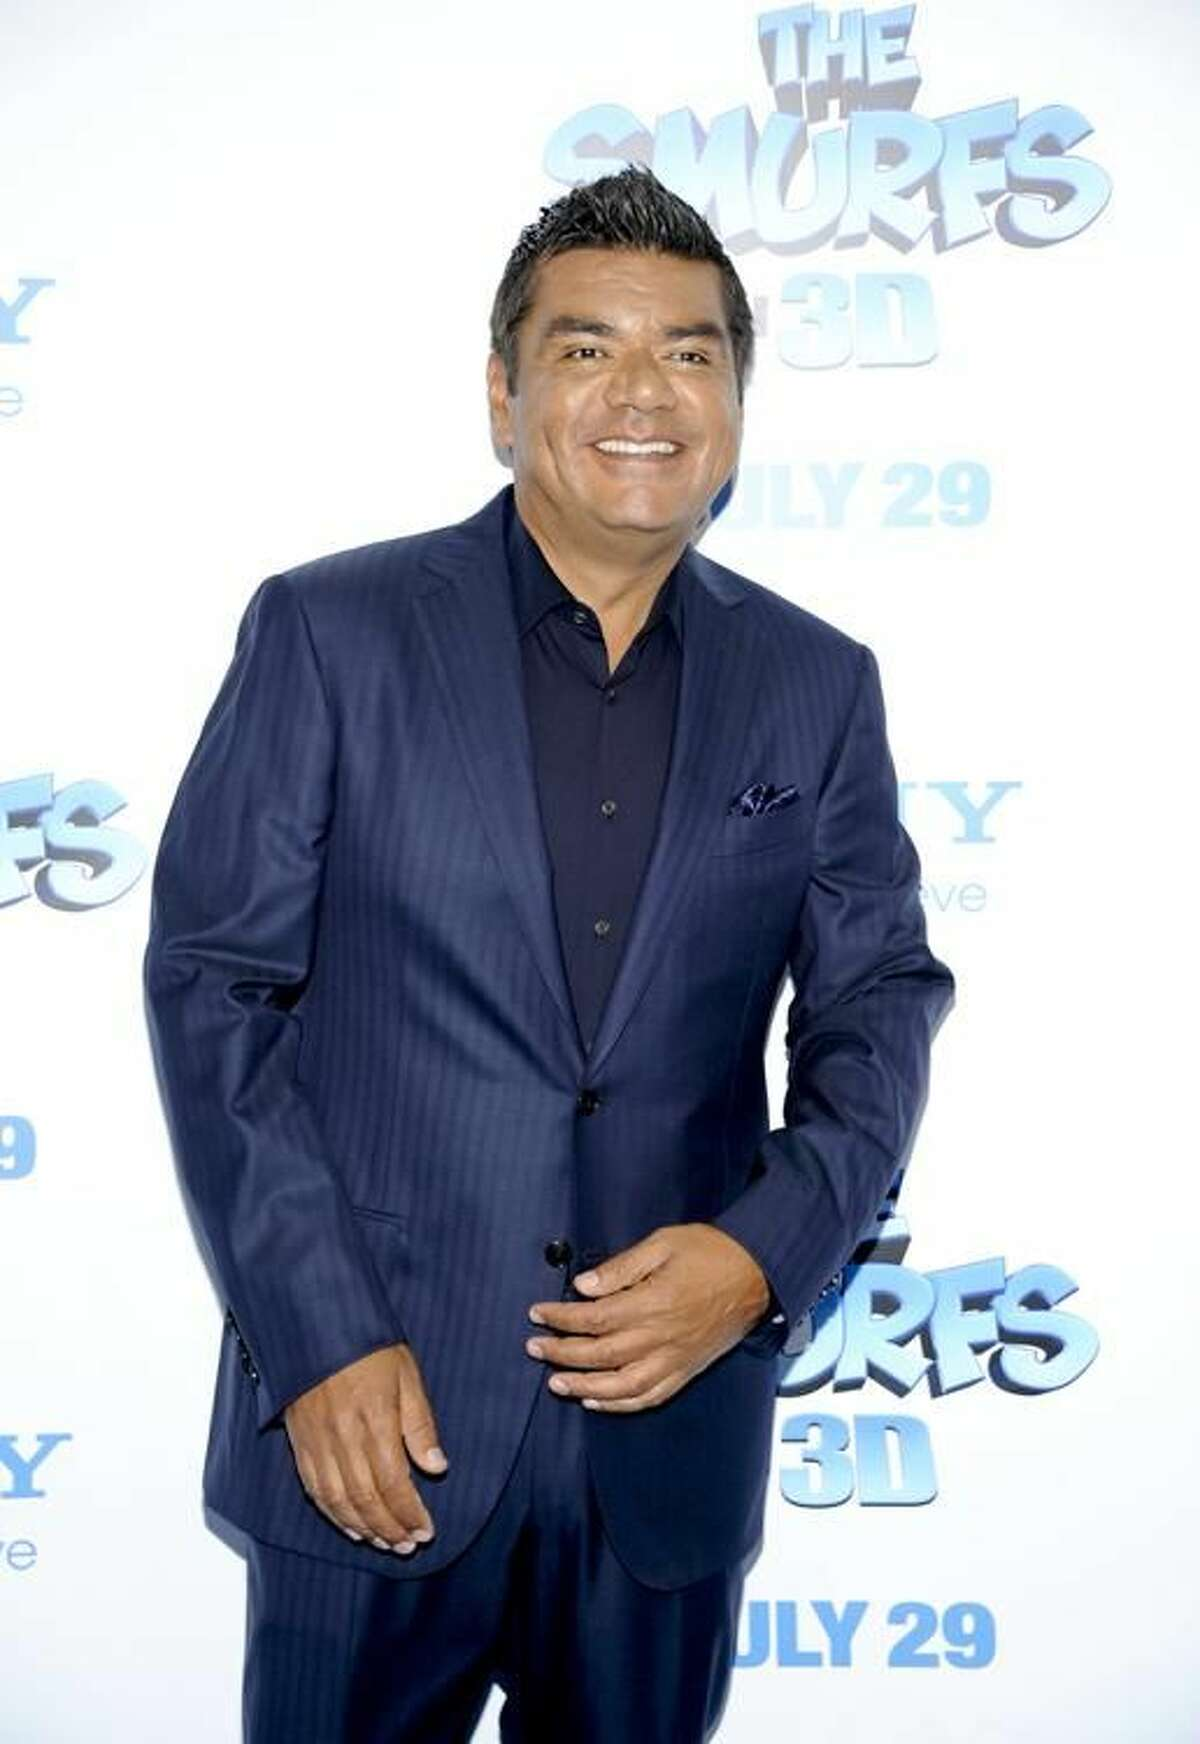 Actor George Lopez attends the premiere of